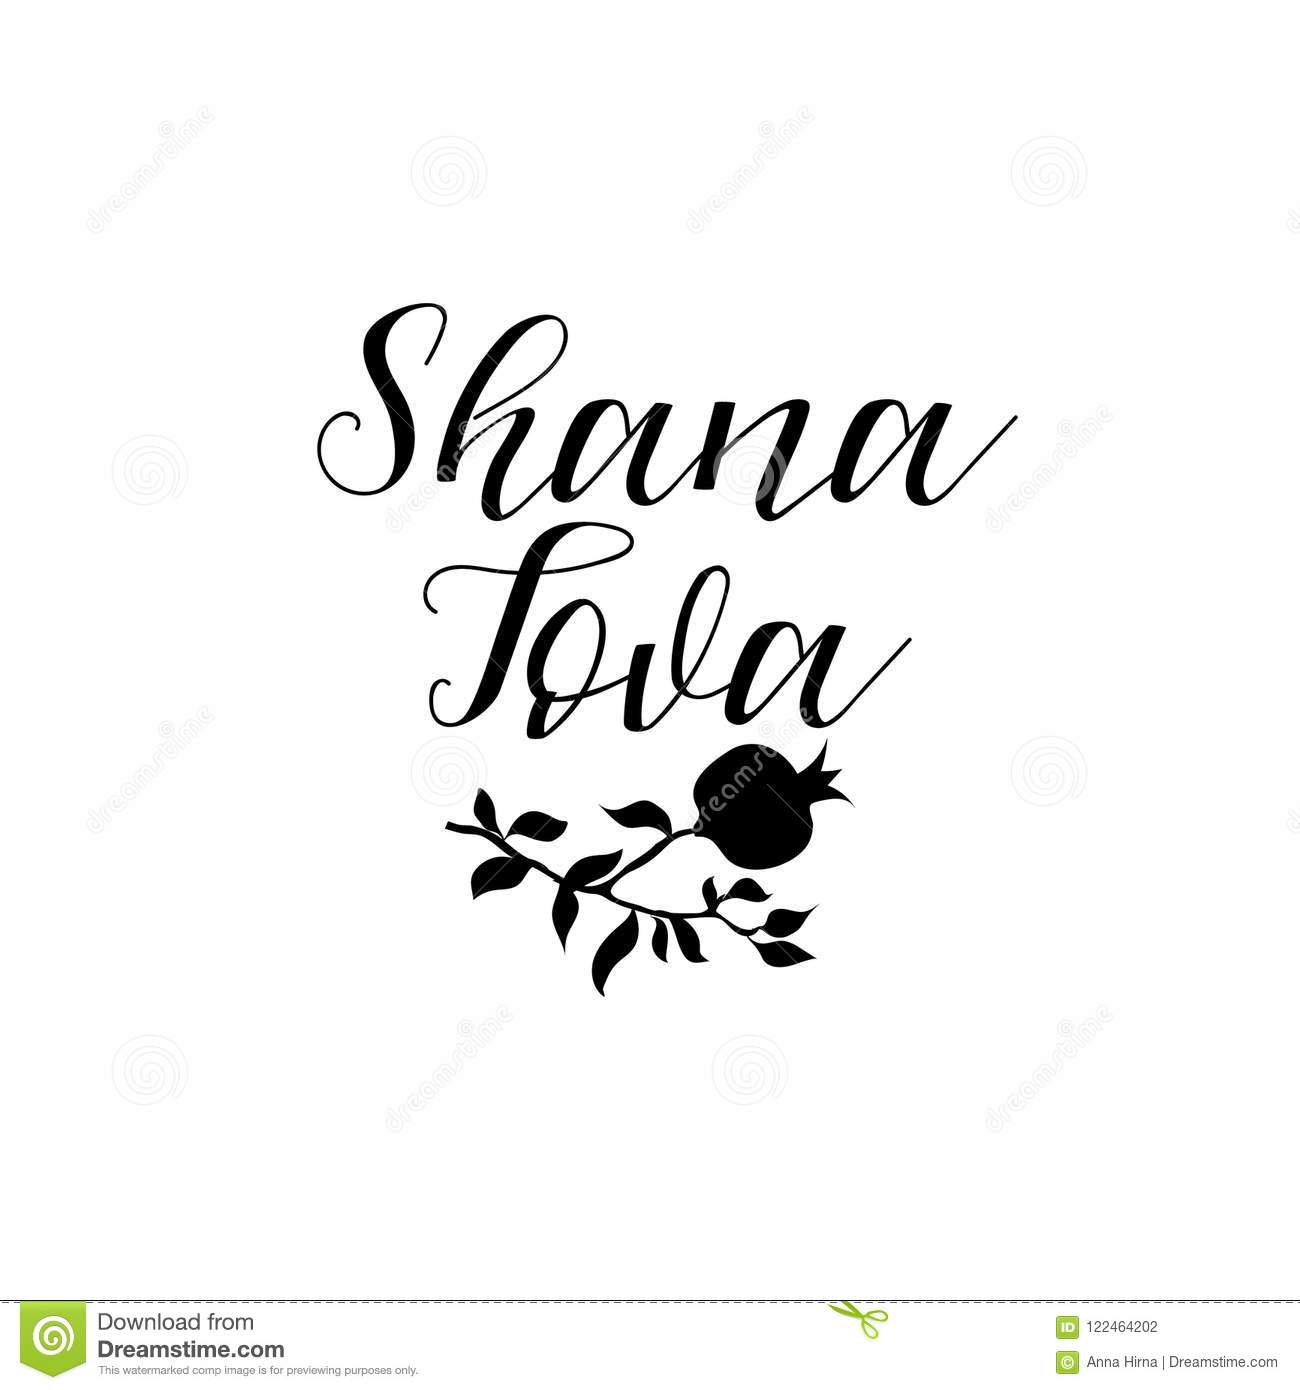 Rosh hashanah jewish new year greeting card text shana tova shana tova lettering jewish new year template for postcard or invitation card banner poster isolated on white background m4hsunfo